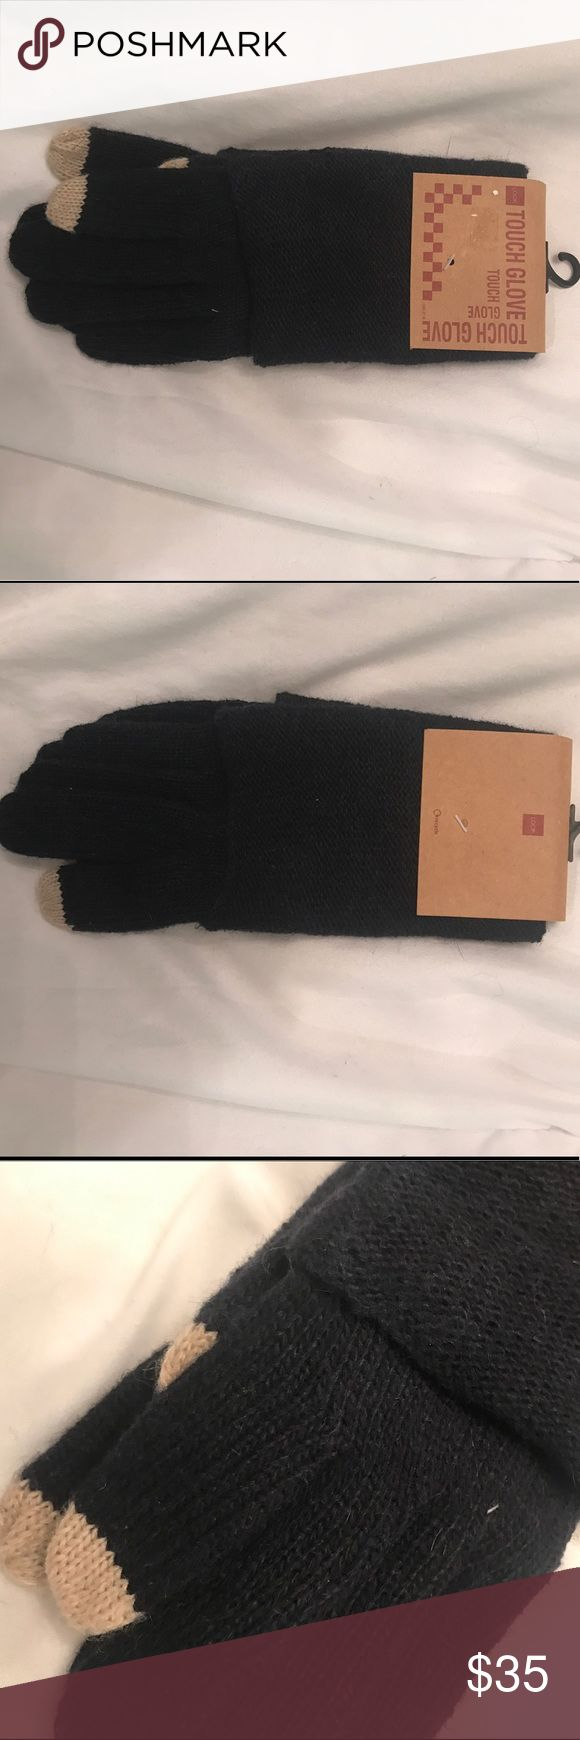 Driving texting gloves - Texting Gloves Nwt